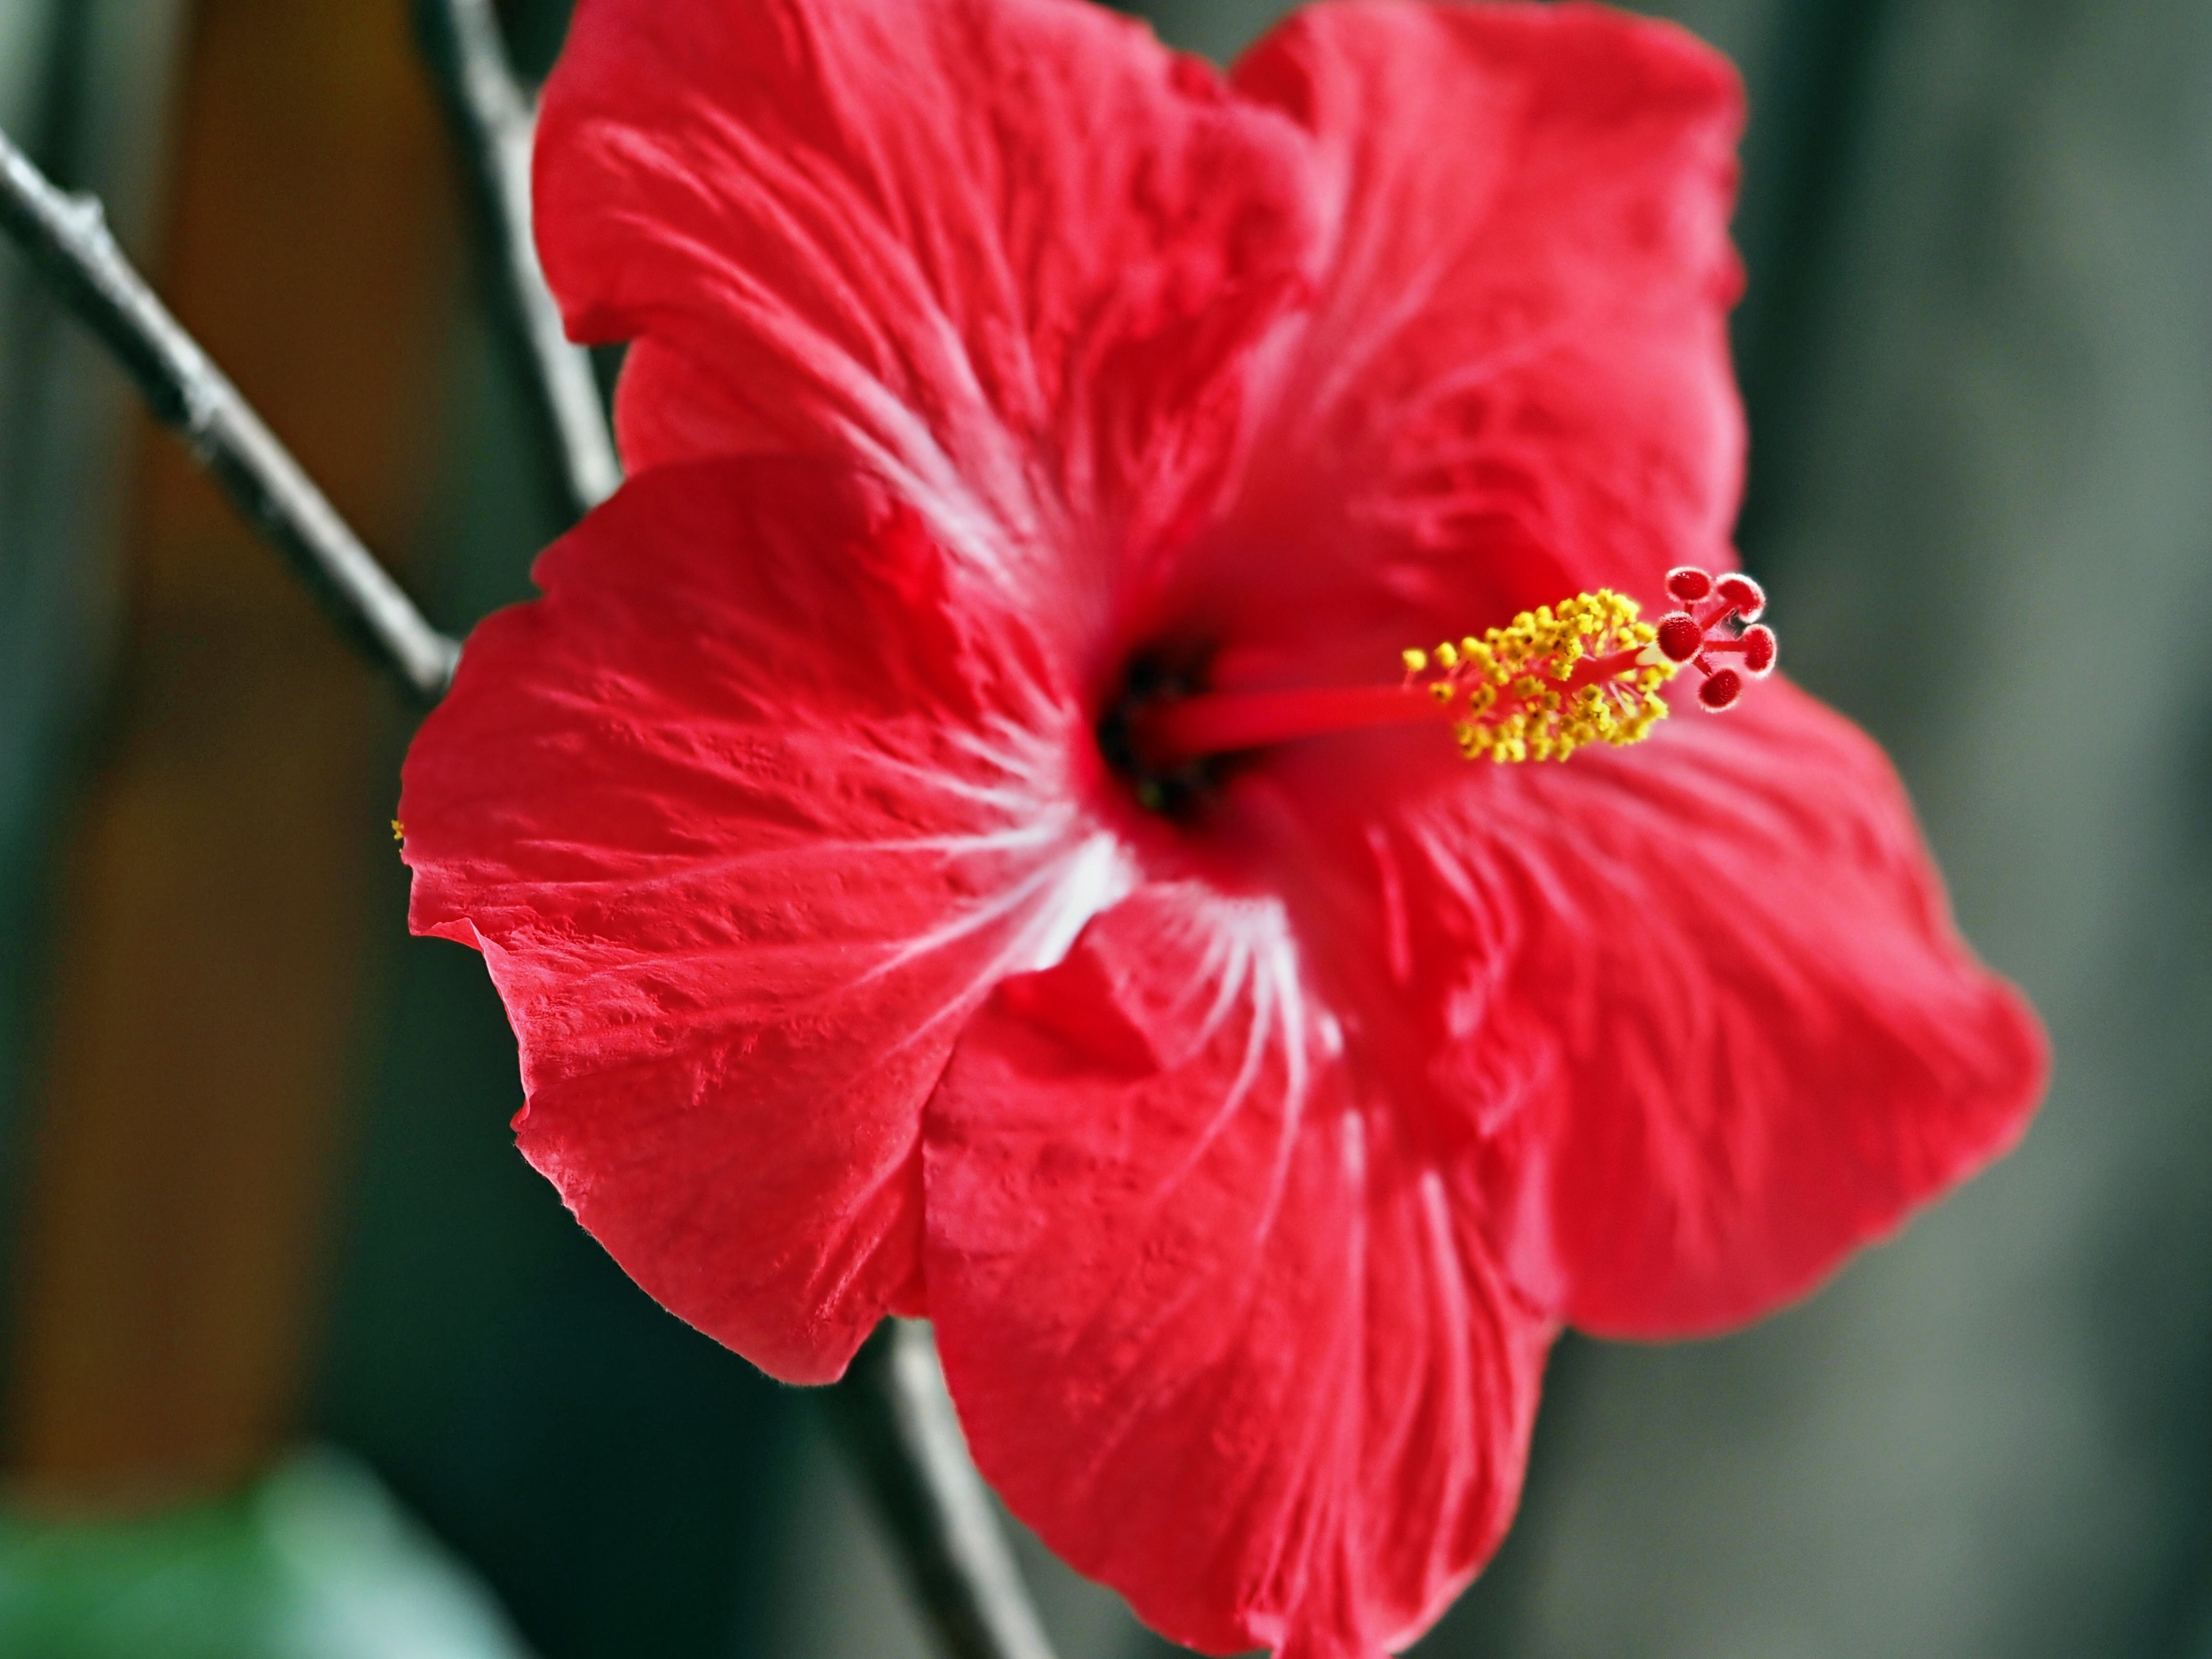 This should be Hibiscus-5.jpeg.  Is it missing?